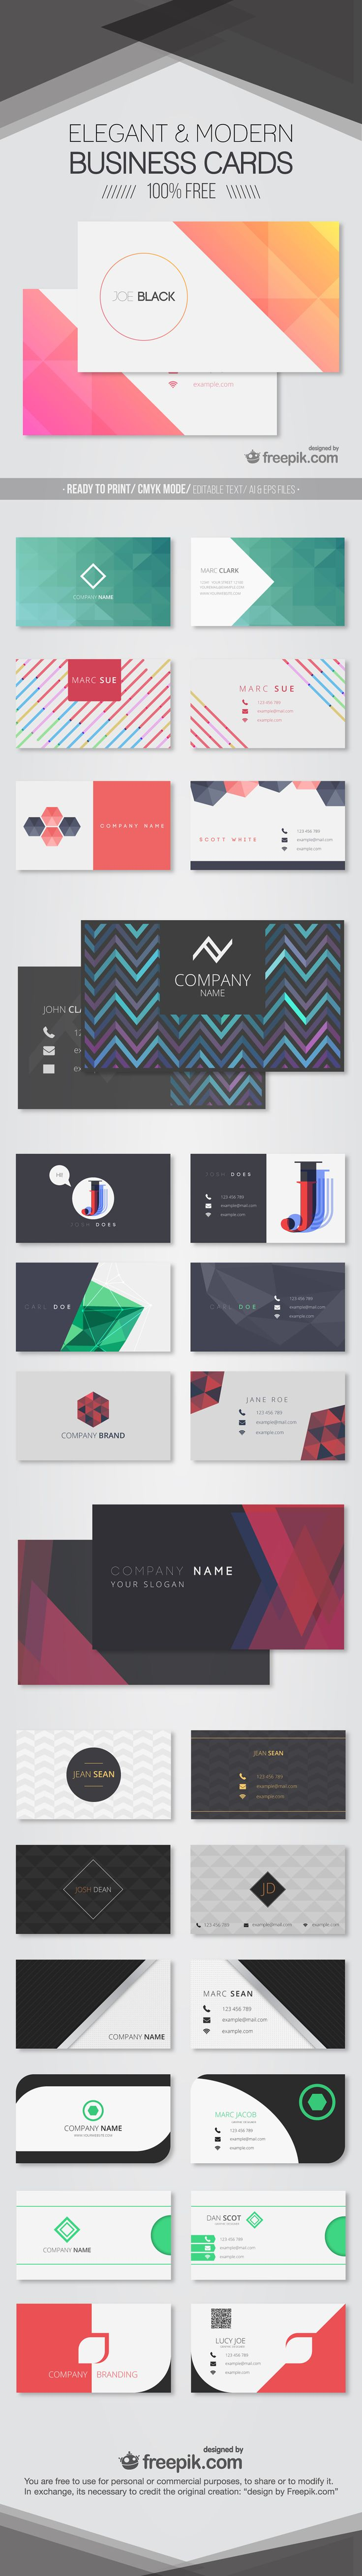 Best 25 modern business cards ideas on pinterest free business 30 free modern business card templates magicingreecefo Choice Image